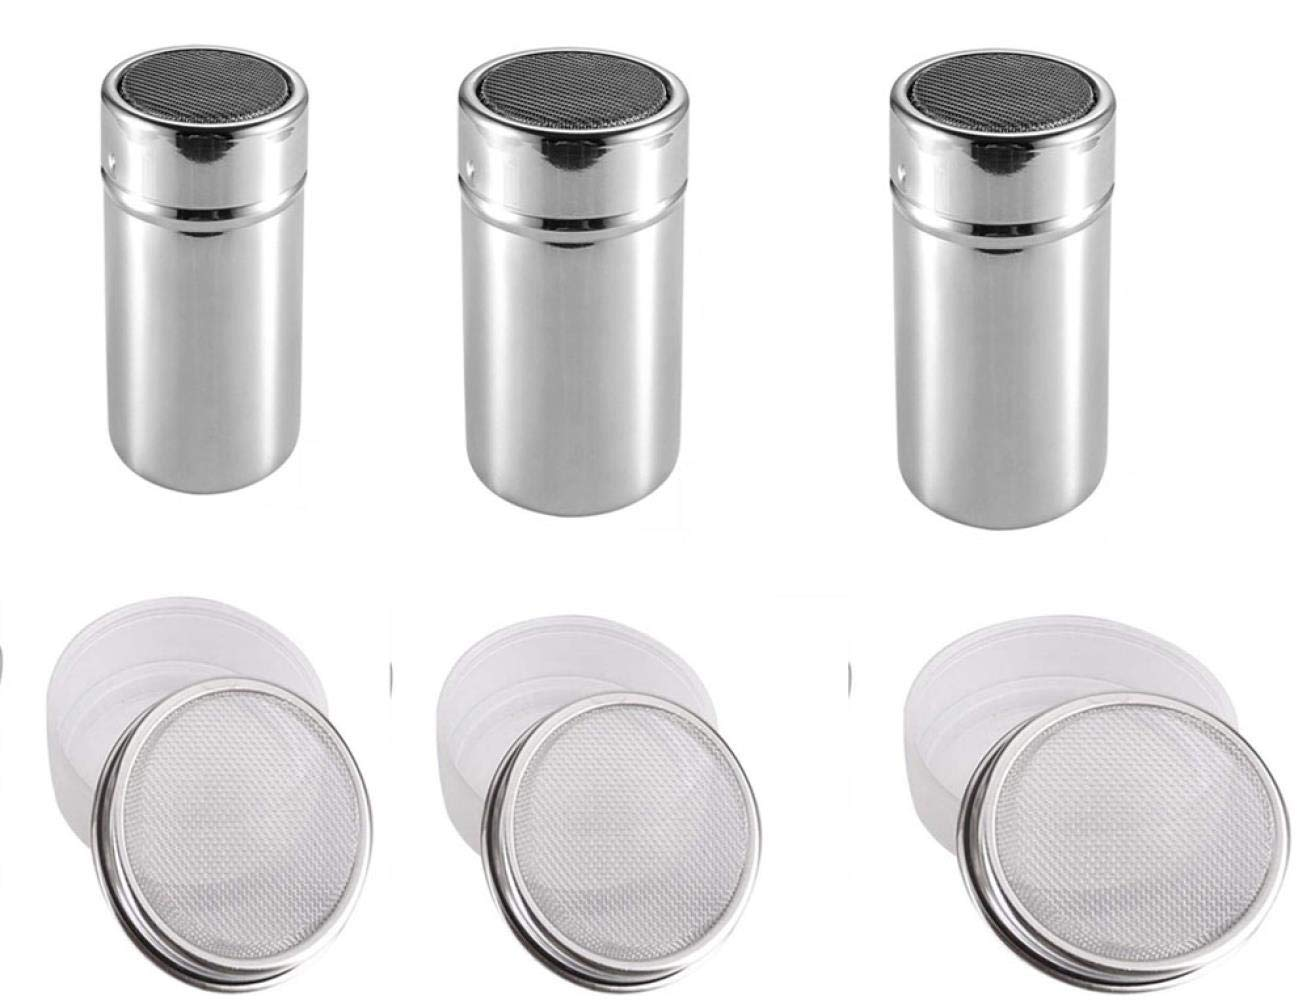 Powdered Sugar Shaker with Lid - Fancy Coffee Appliance Stainless Steel Powder Cylinder Mesh Powder Sieve Duster Dusting Powder Bottle Cocoa Powder with Lid (3 Pack), small by JYHYGS